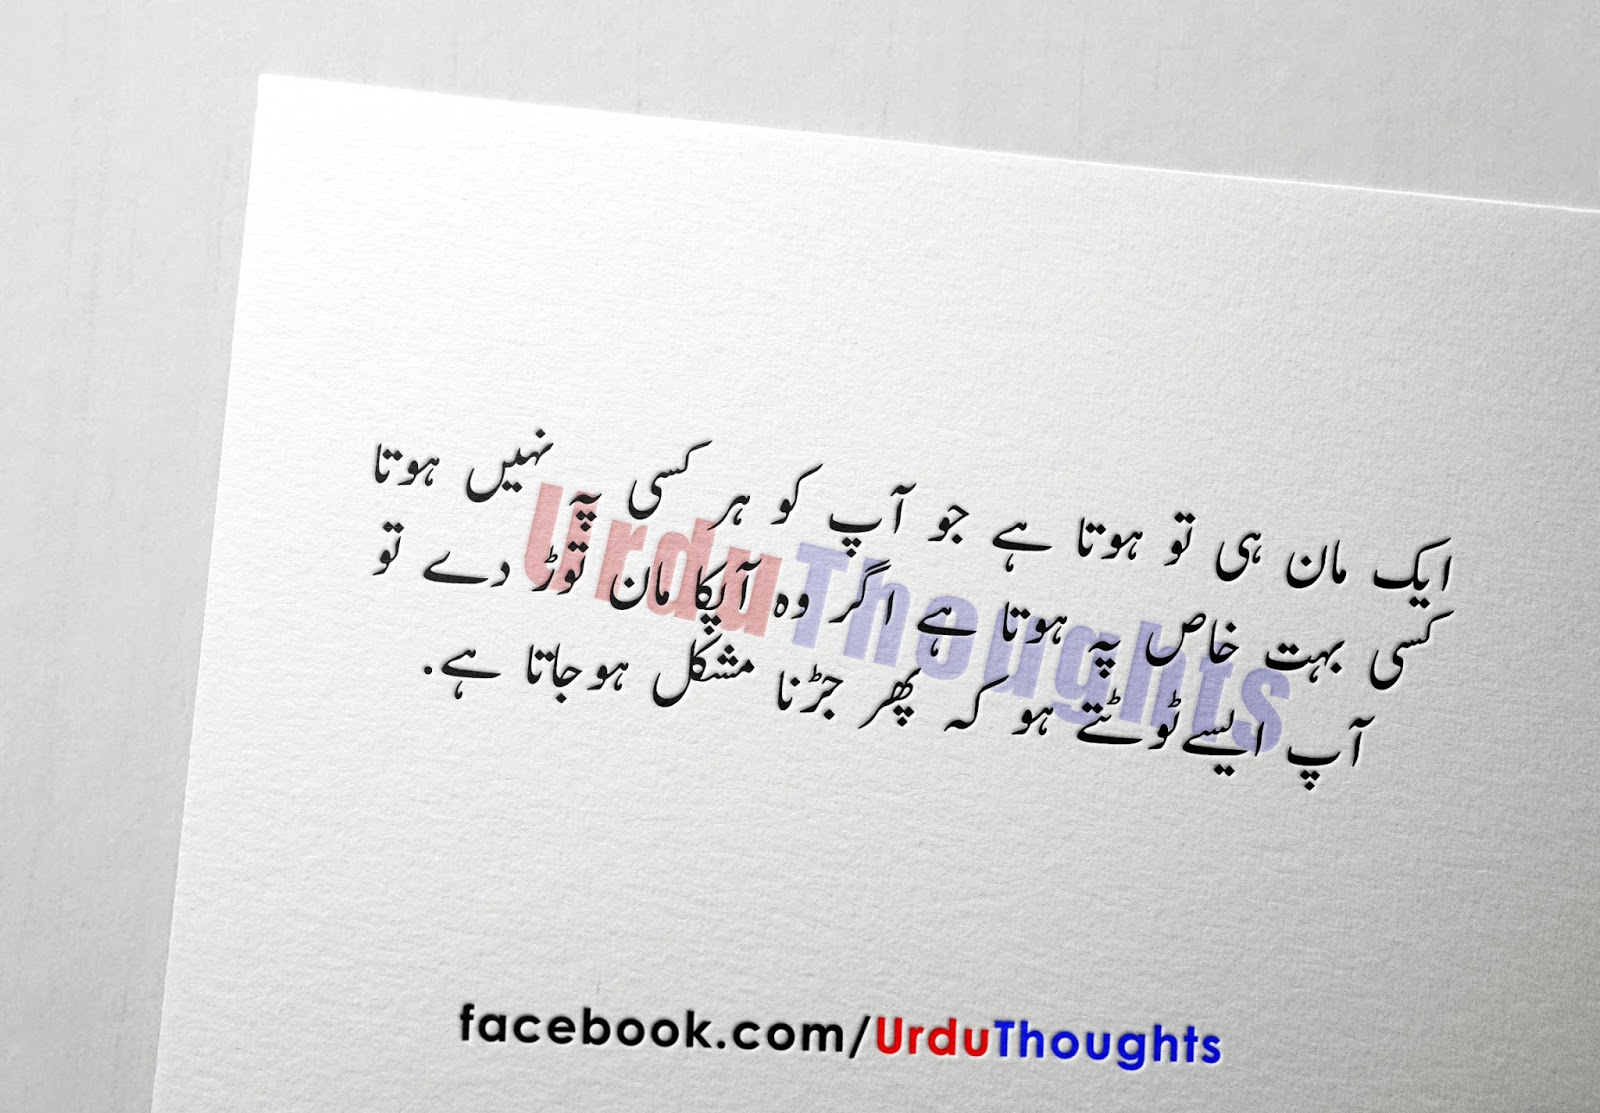 Quotes In Urdu Beauteous Best Urdu Quotes With Images  Famous Urdu Quotes  Urdu Thoughts